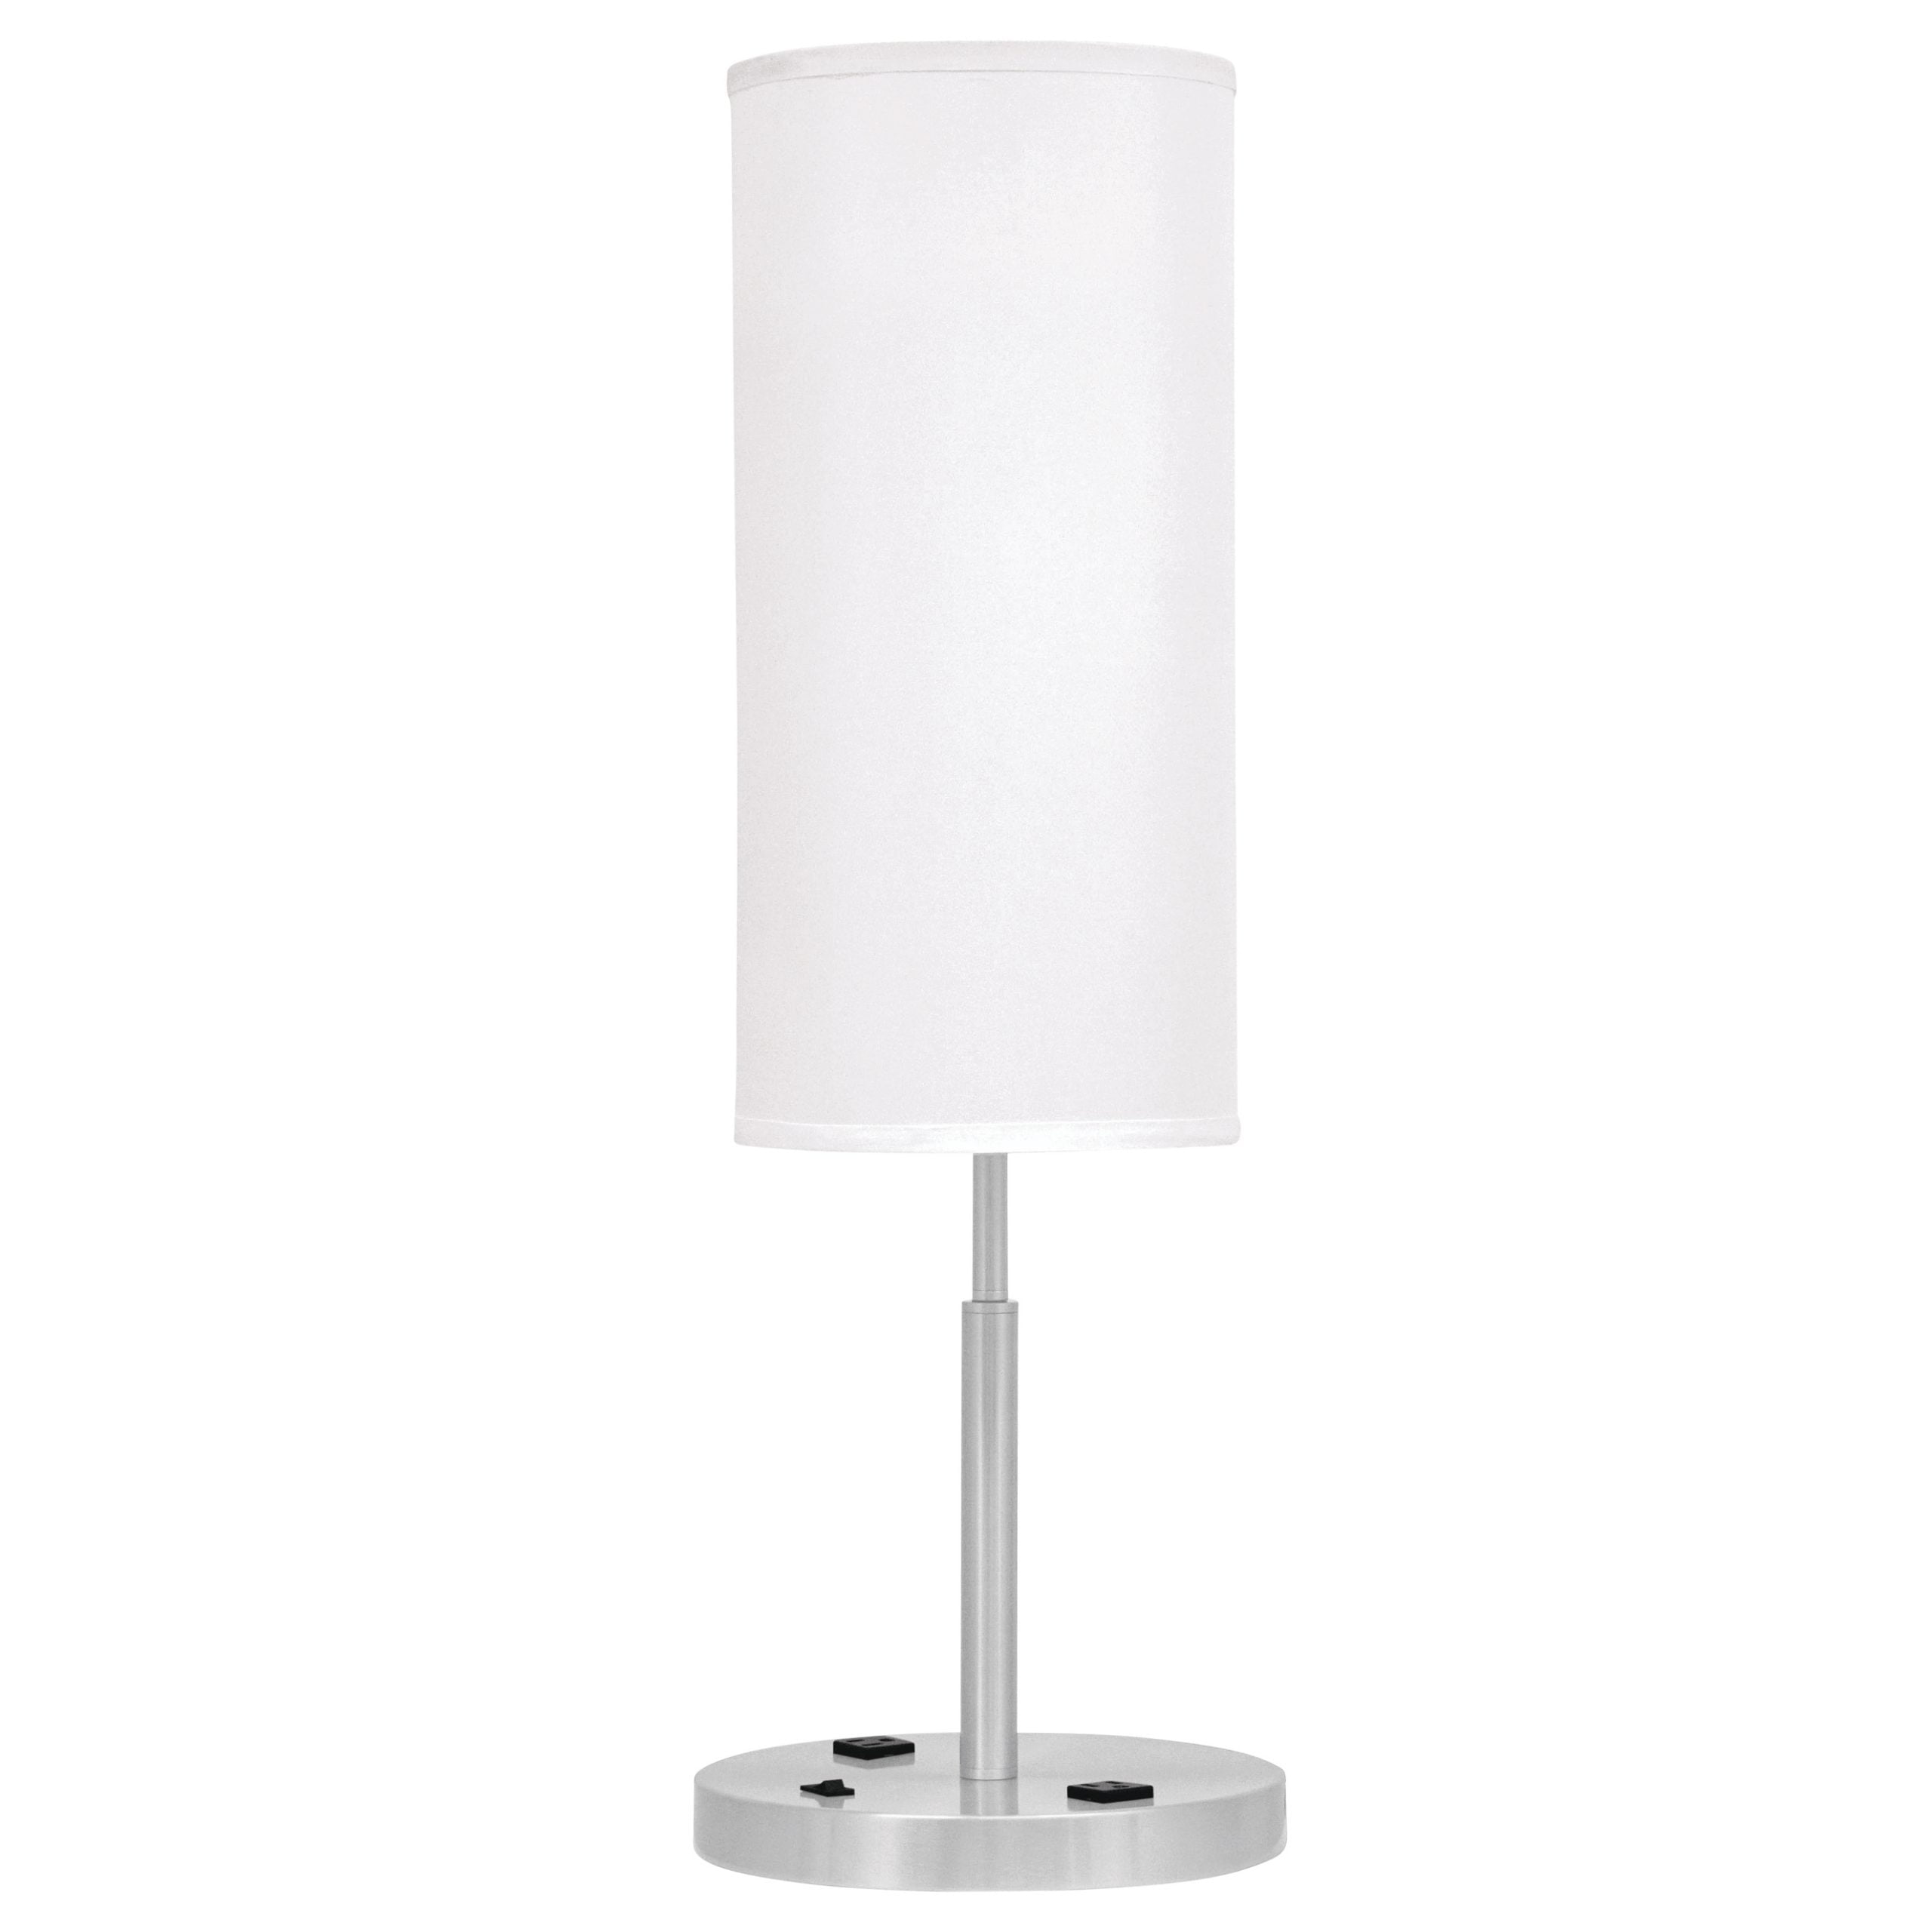 Mainstay End Table Lamp with Rocker Switch